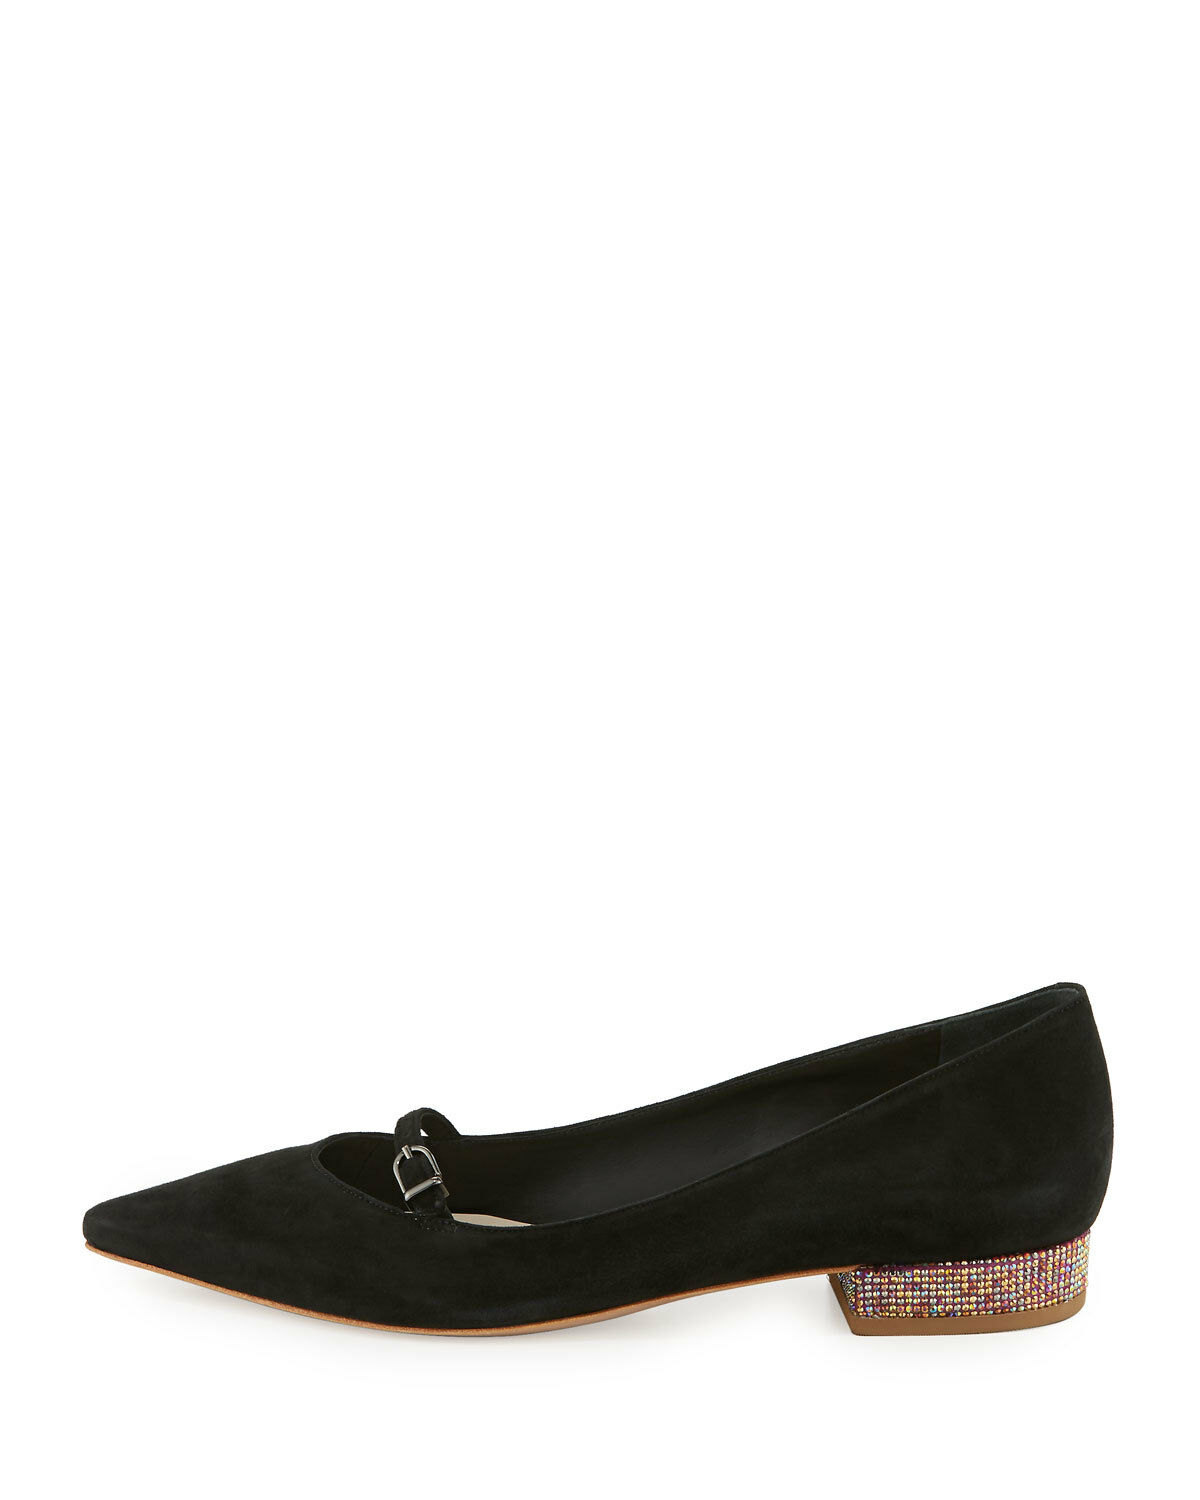 Sophia Sophia Sophia Webster Piper Suede Pointed-Toe Flat, Black msrp   445 Size 38.5 6c148d